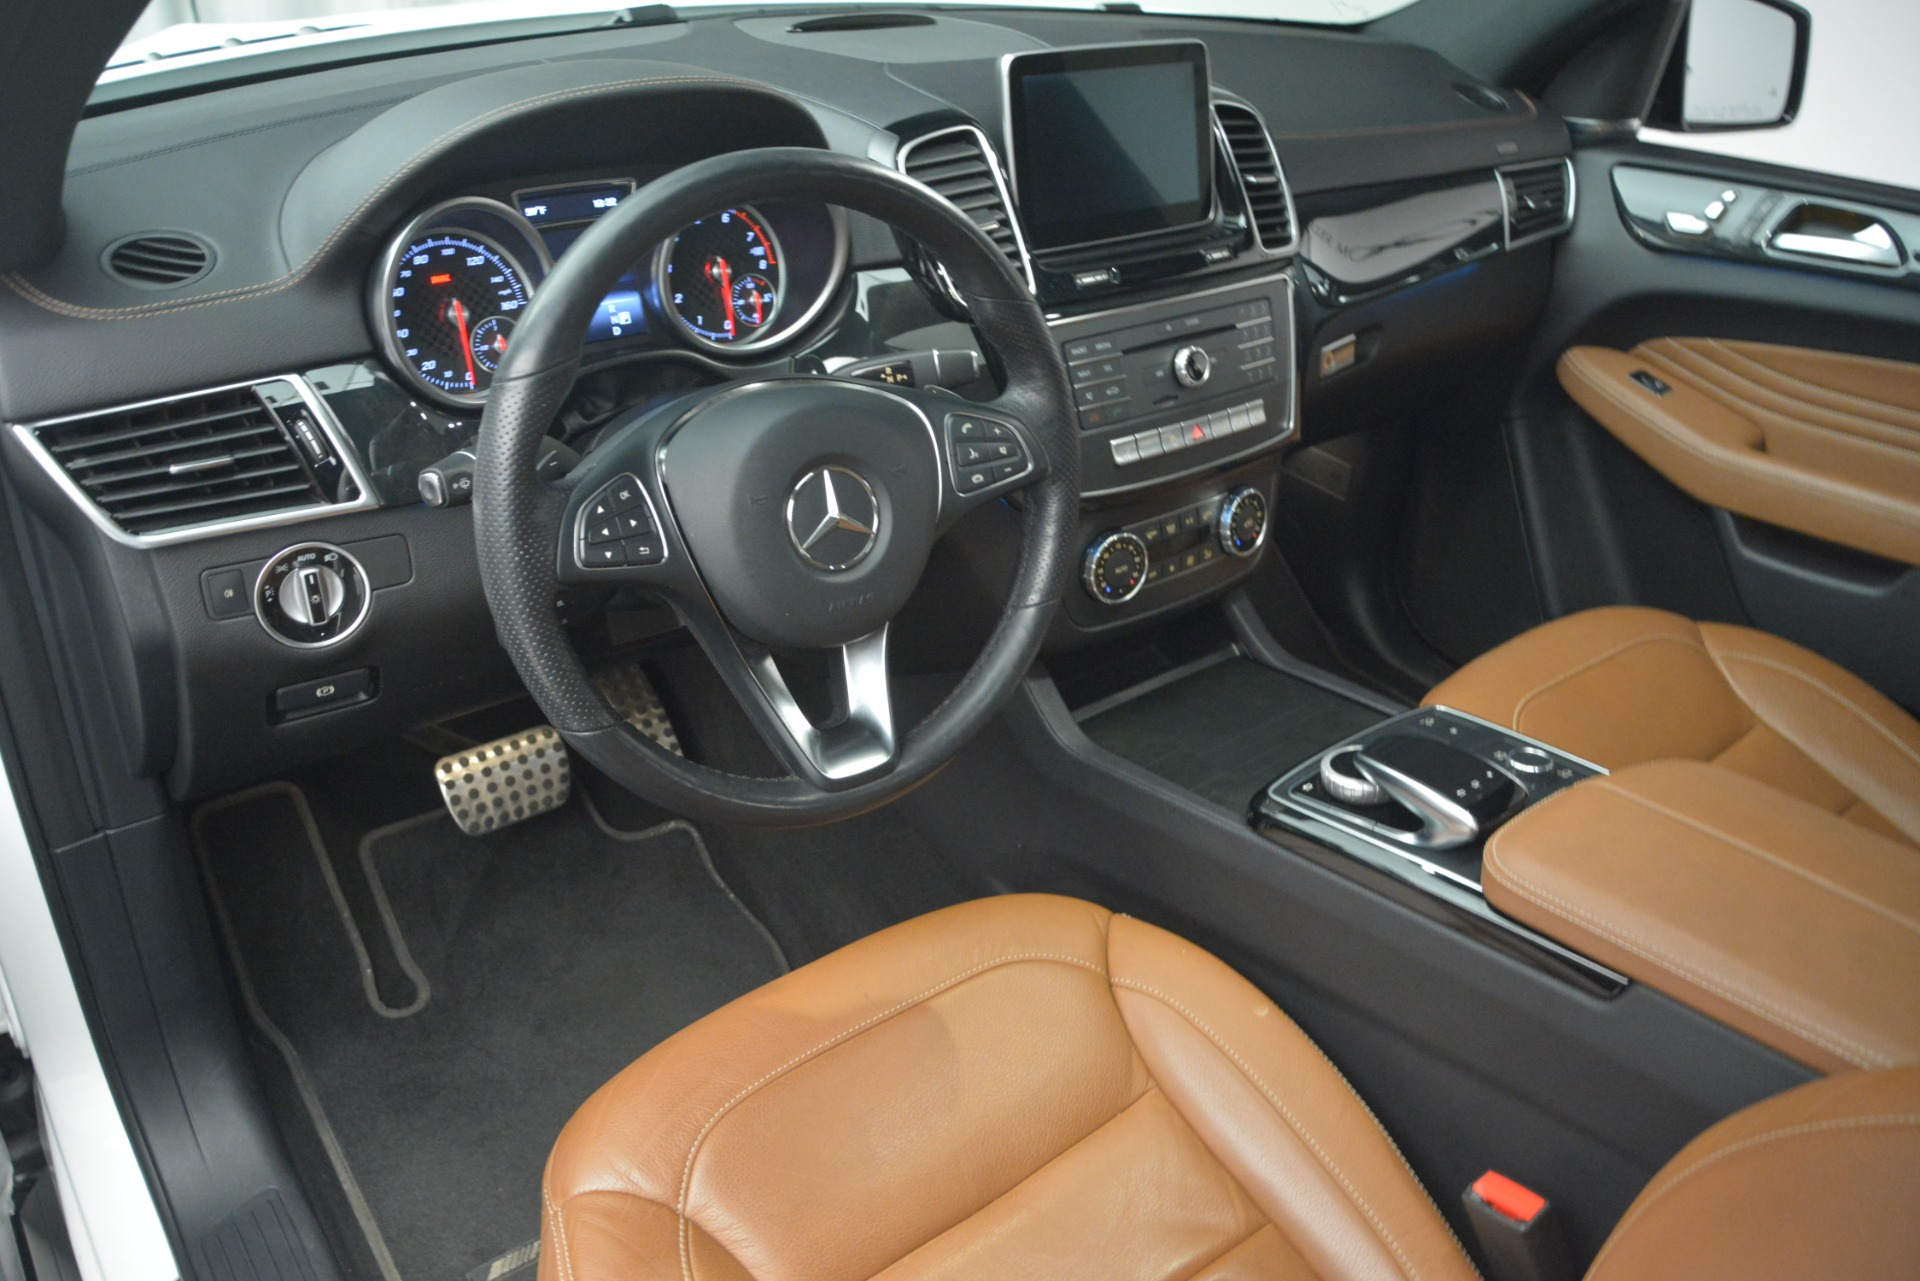 Used 2016 Mercedes-Benz GLE 450 AMG Coupe 4MATIC For Sale In Greenwich, CT 2787_p13